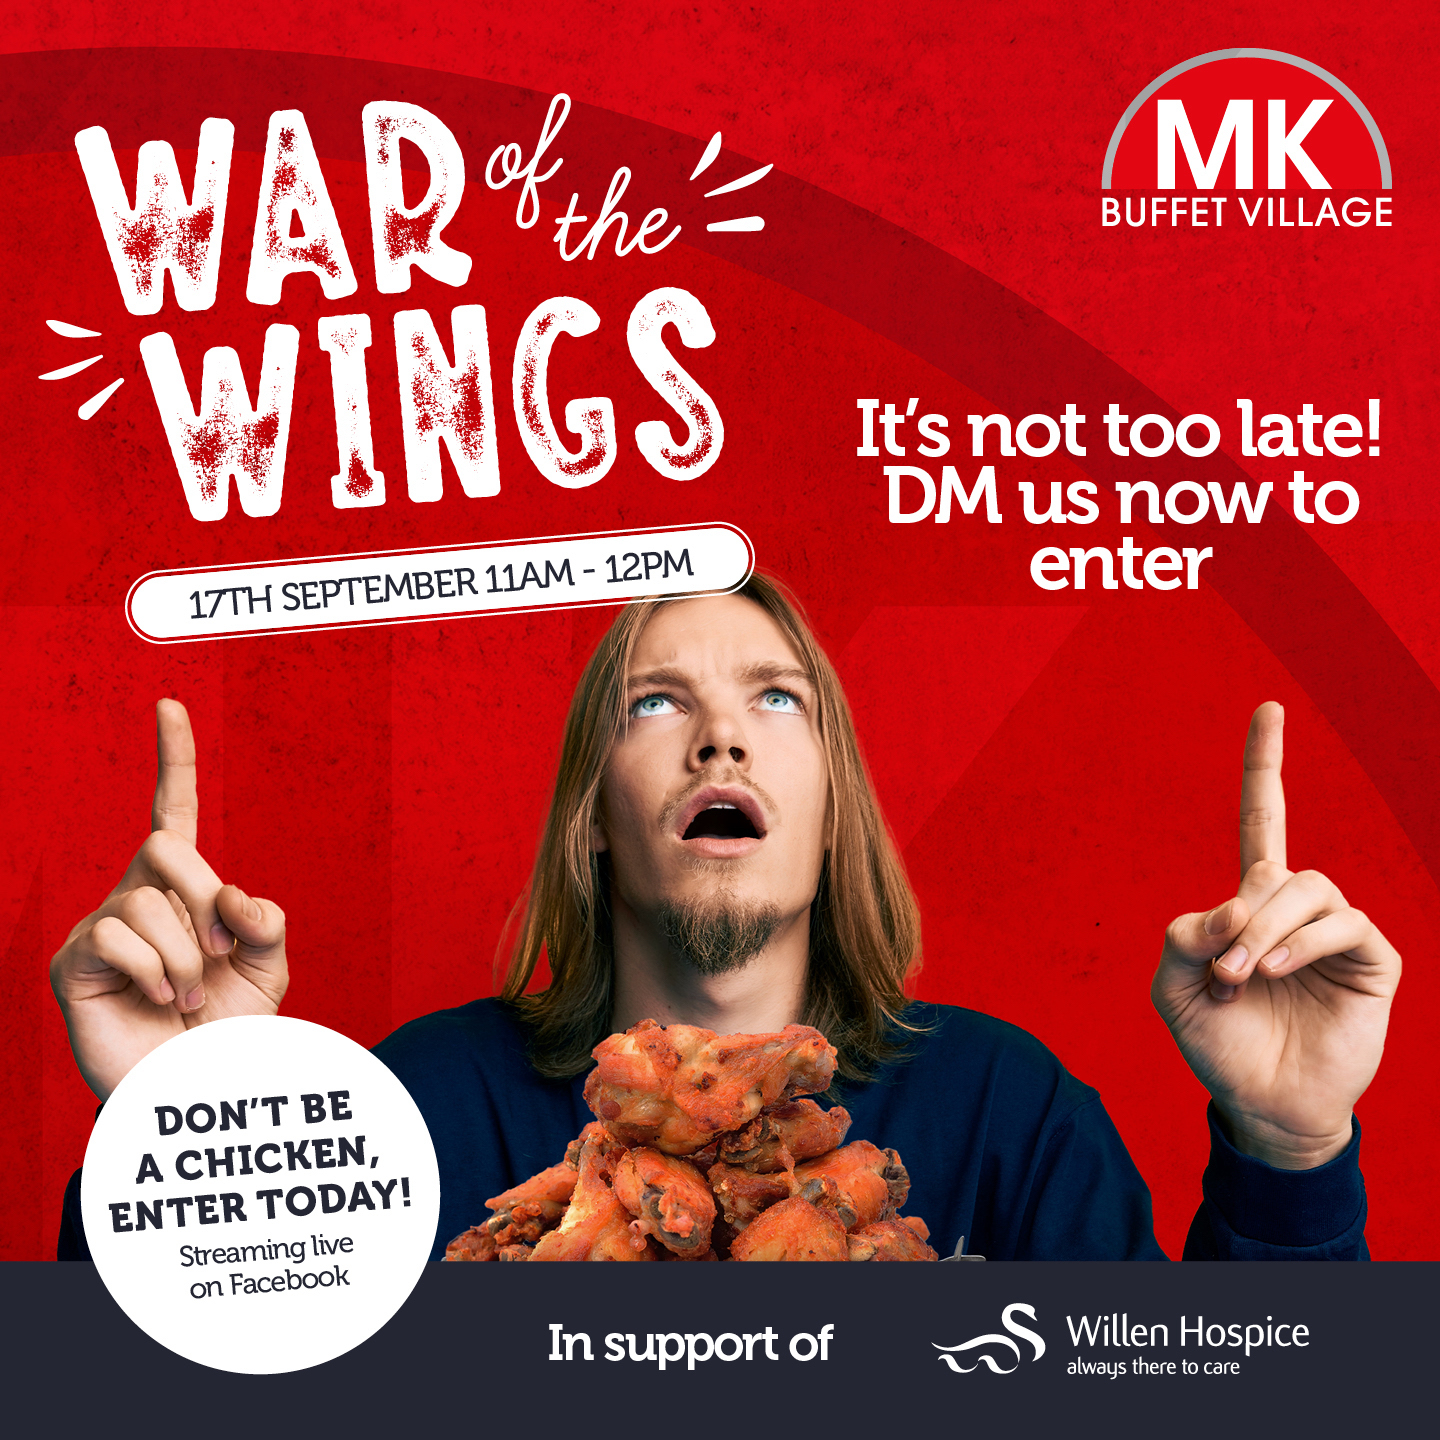 War of the Wings in aid of Willen Hospice 17 September 2021